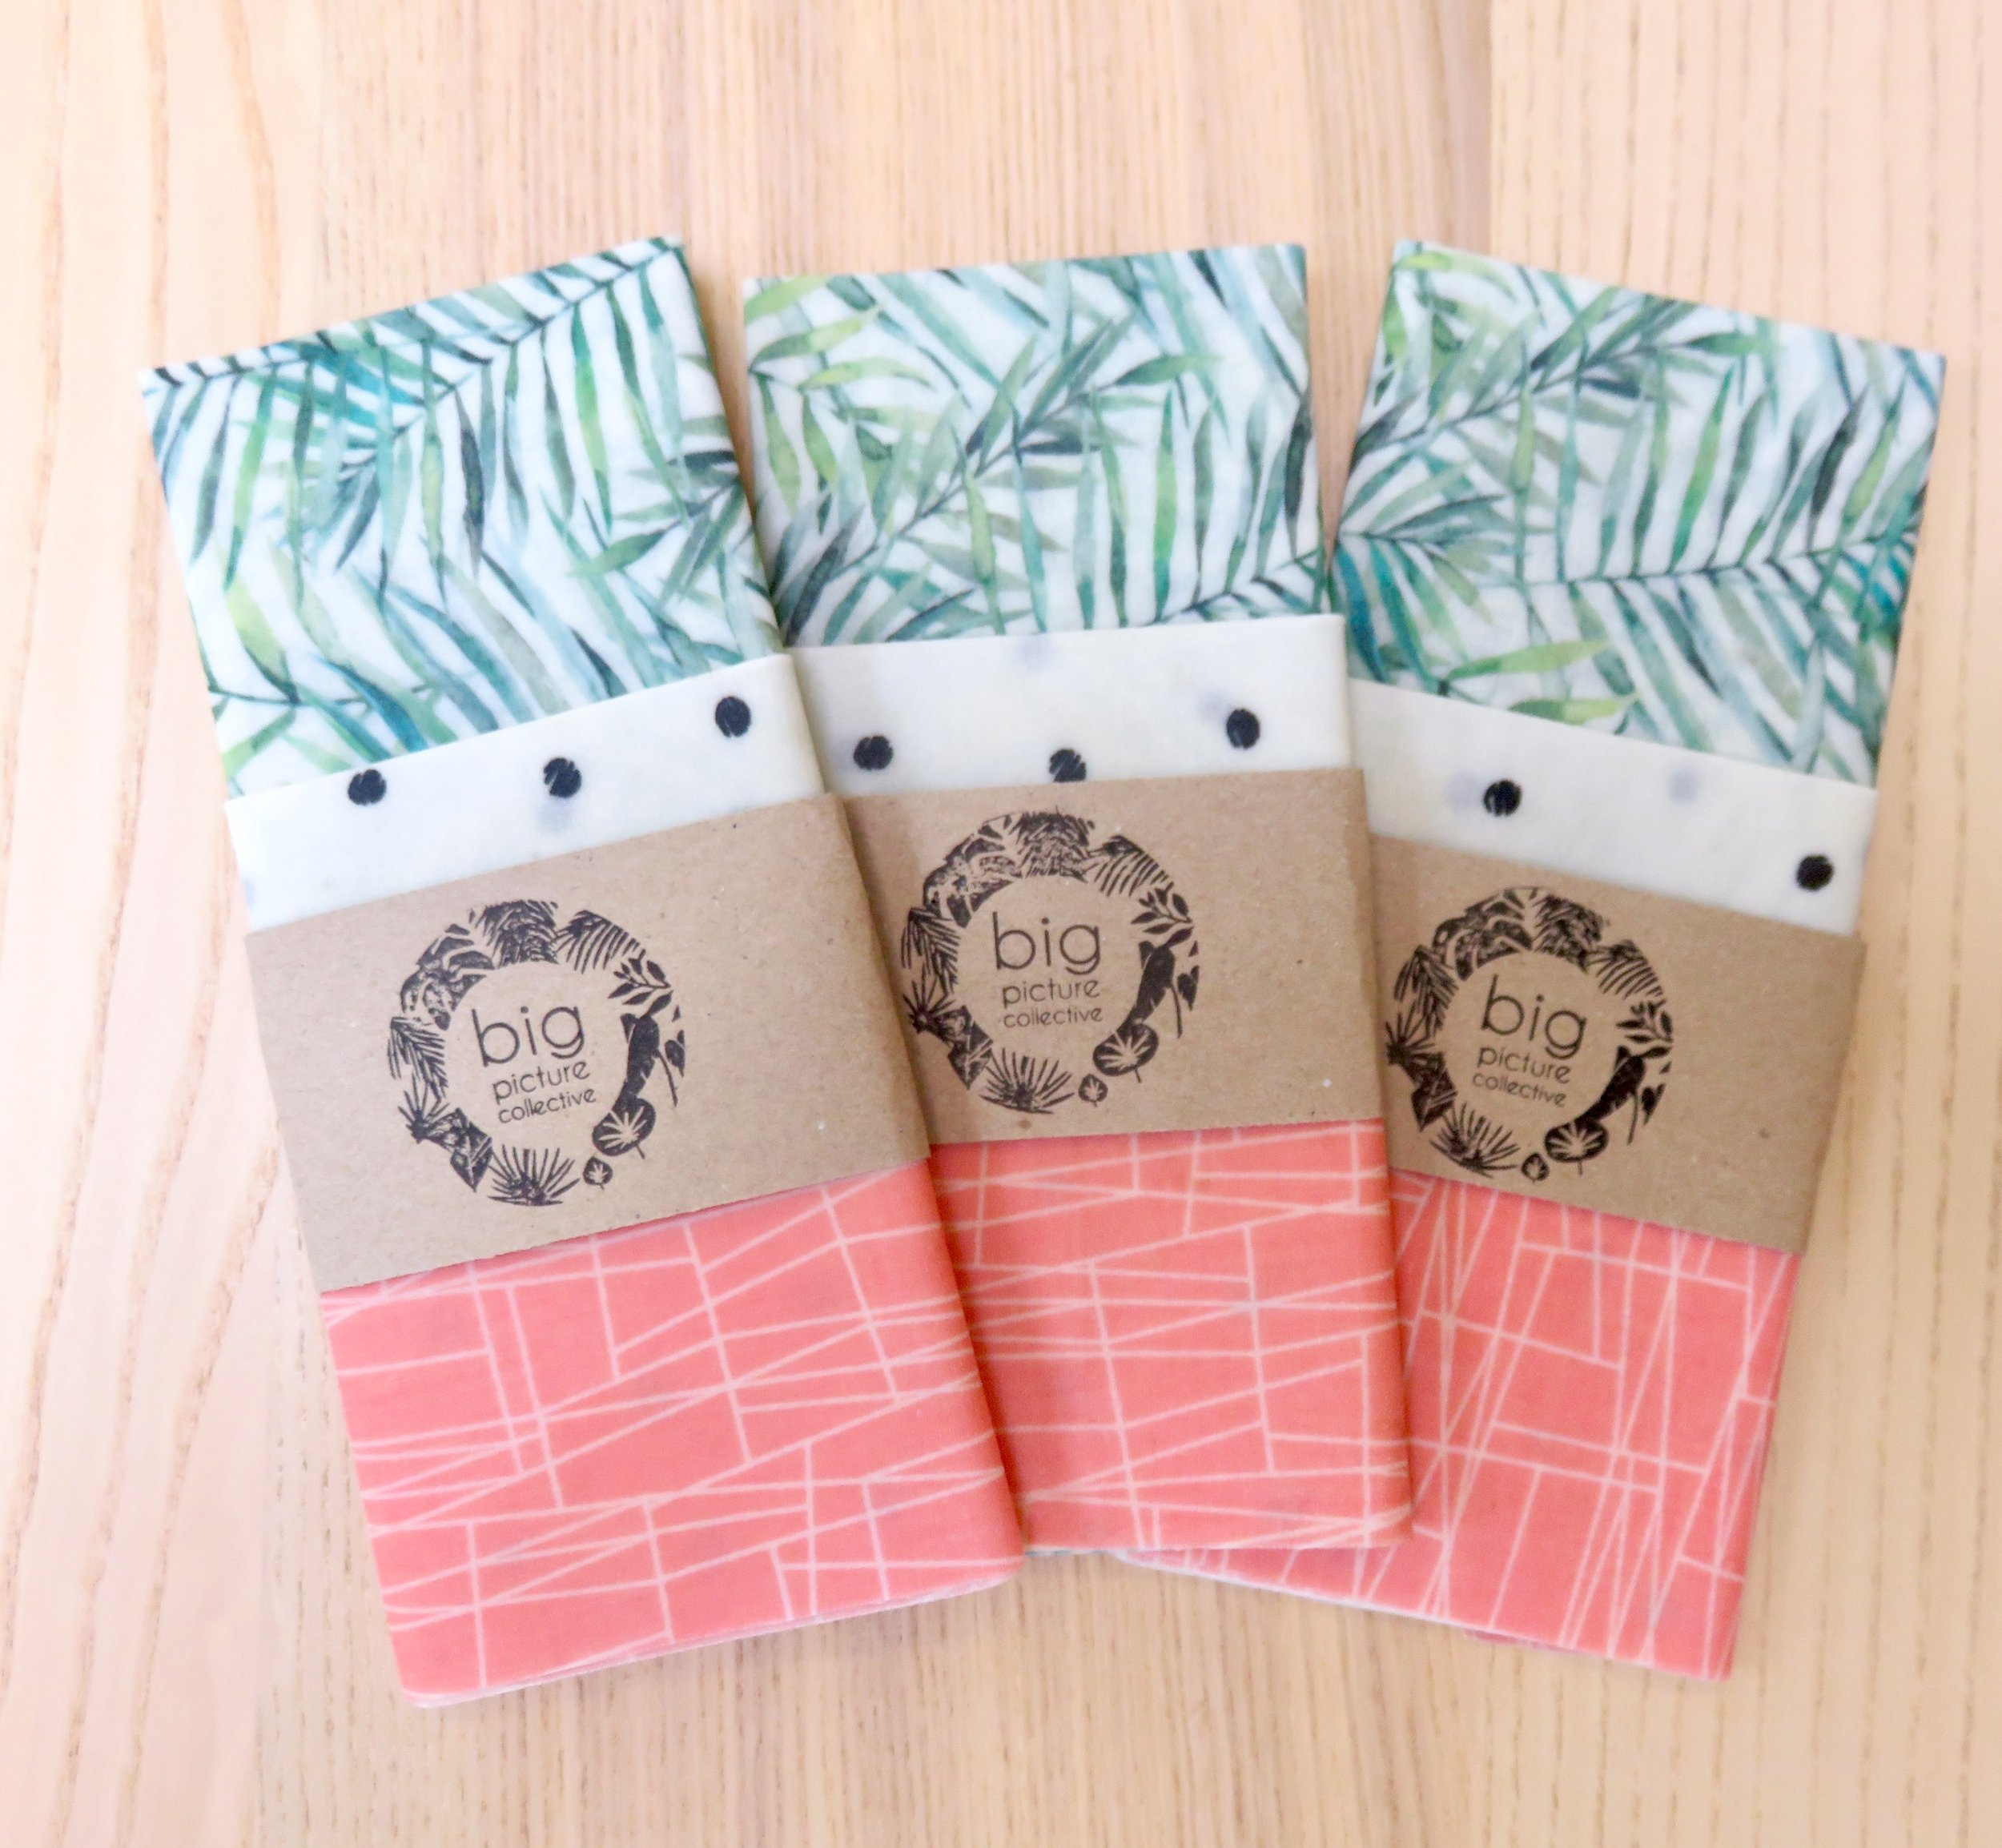 Beeswax Wraps pack of three    https://www.bigpicturecollective.com/sho/beewax-wraps-3-pack